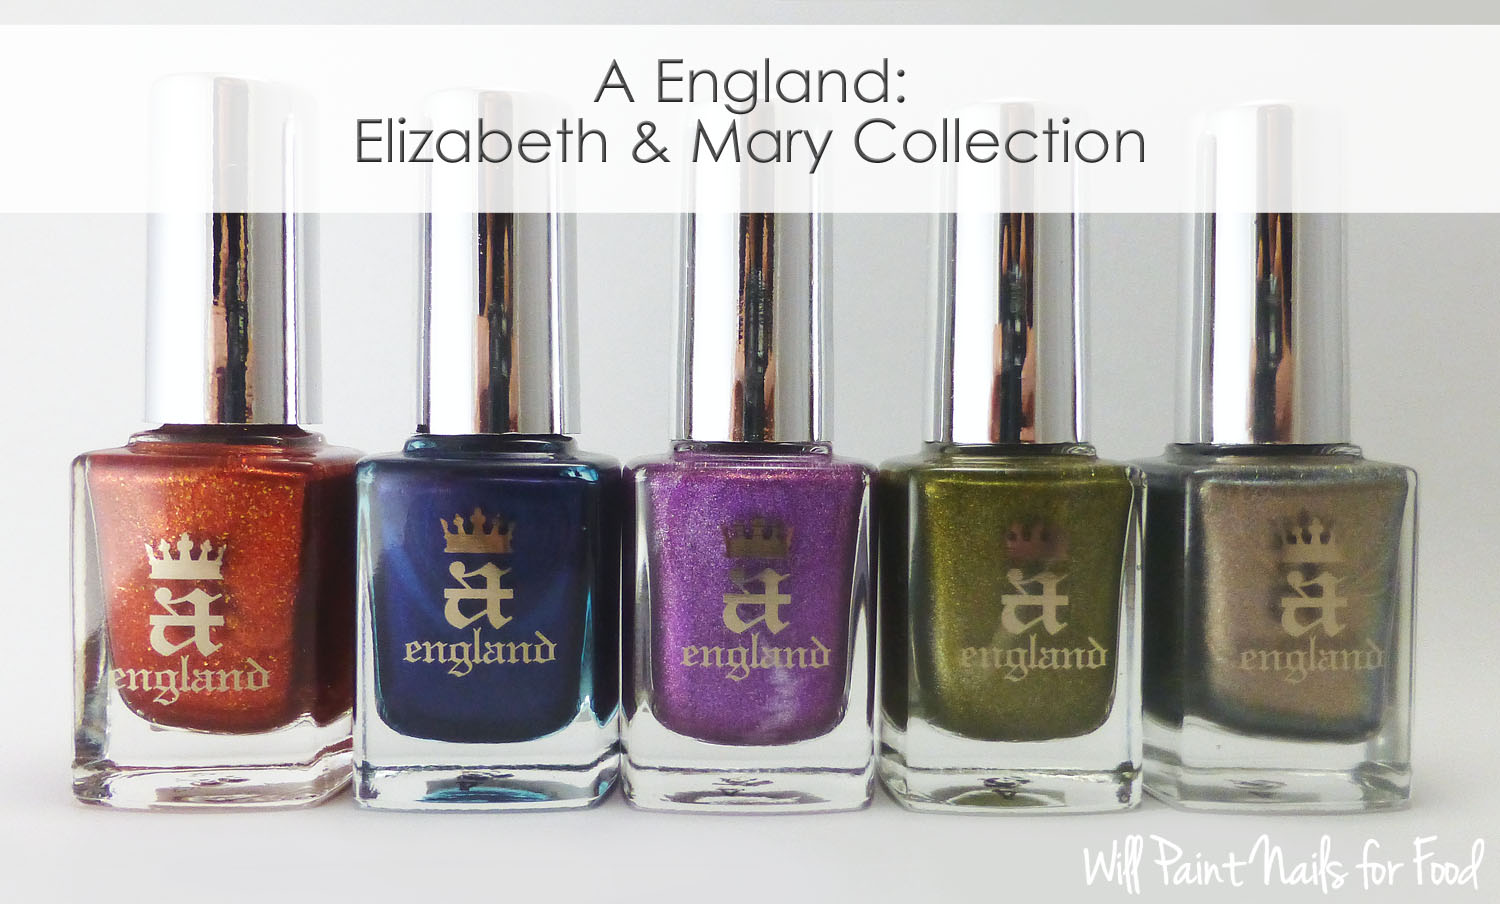 A England Elizabeth & Mary Collection